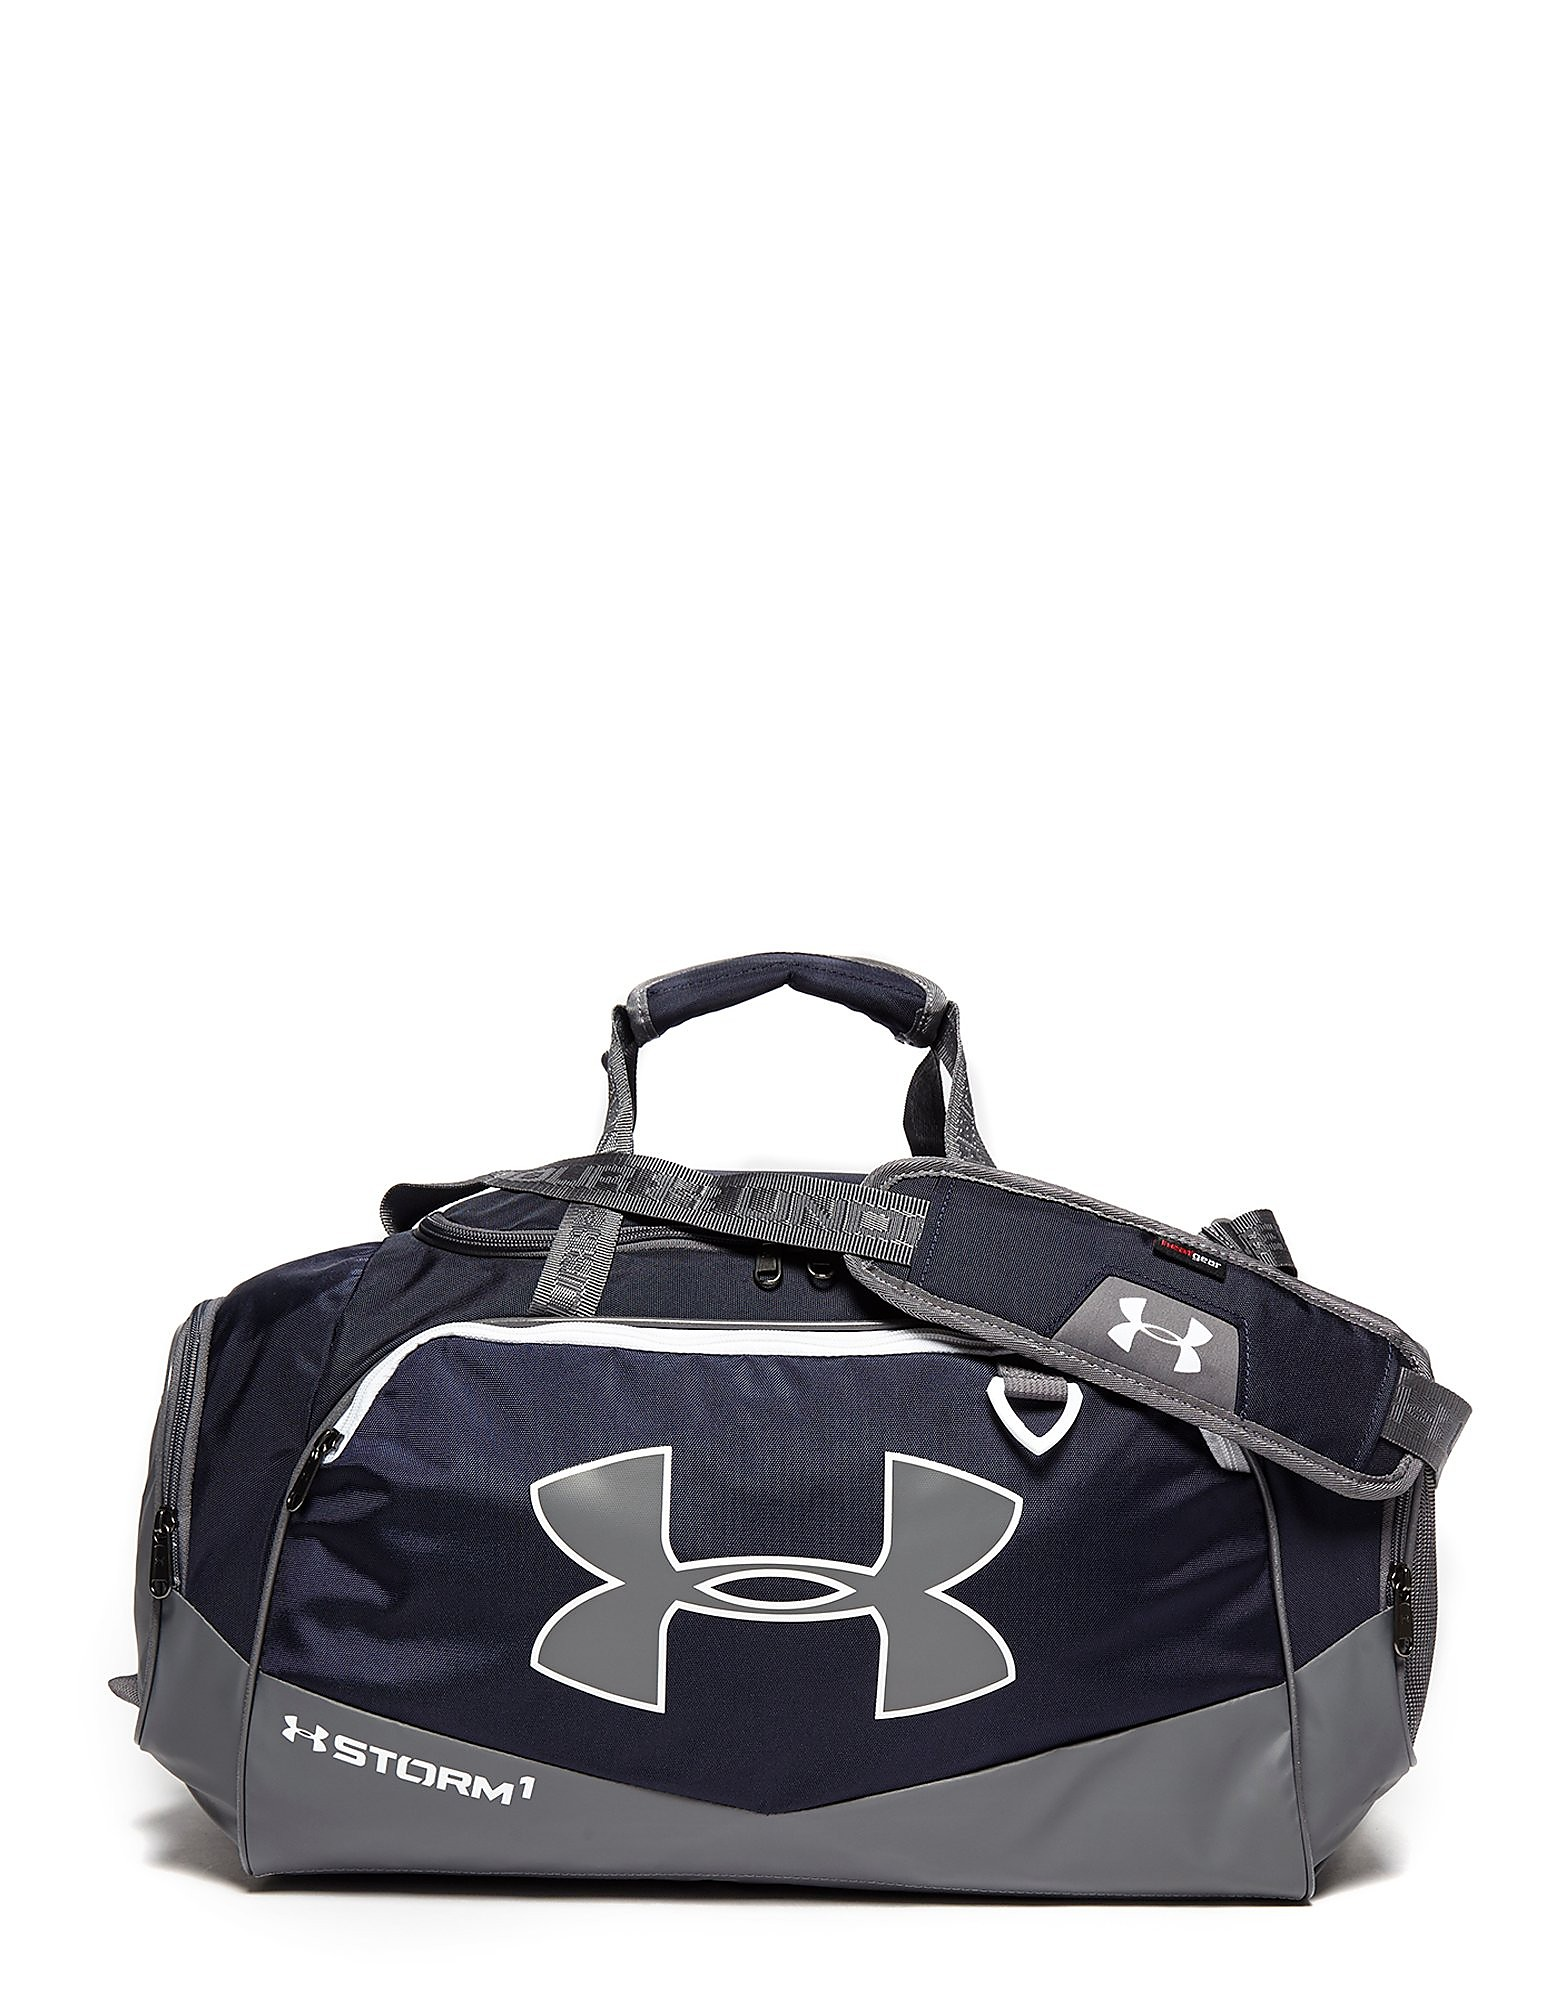 Under Armour Undeniable II Duffle Bag